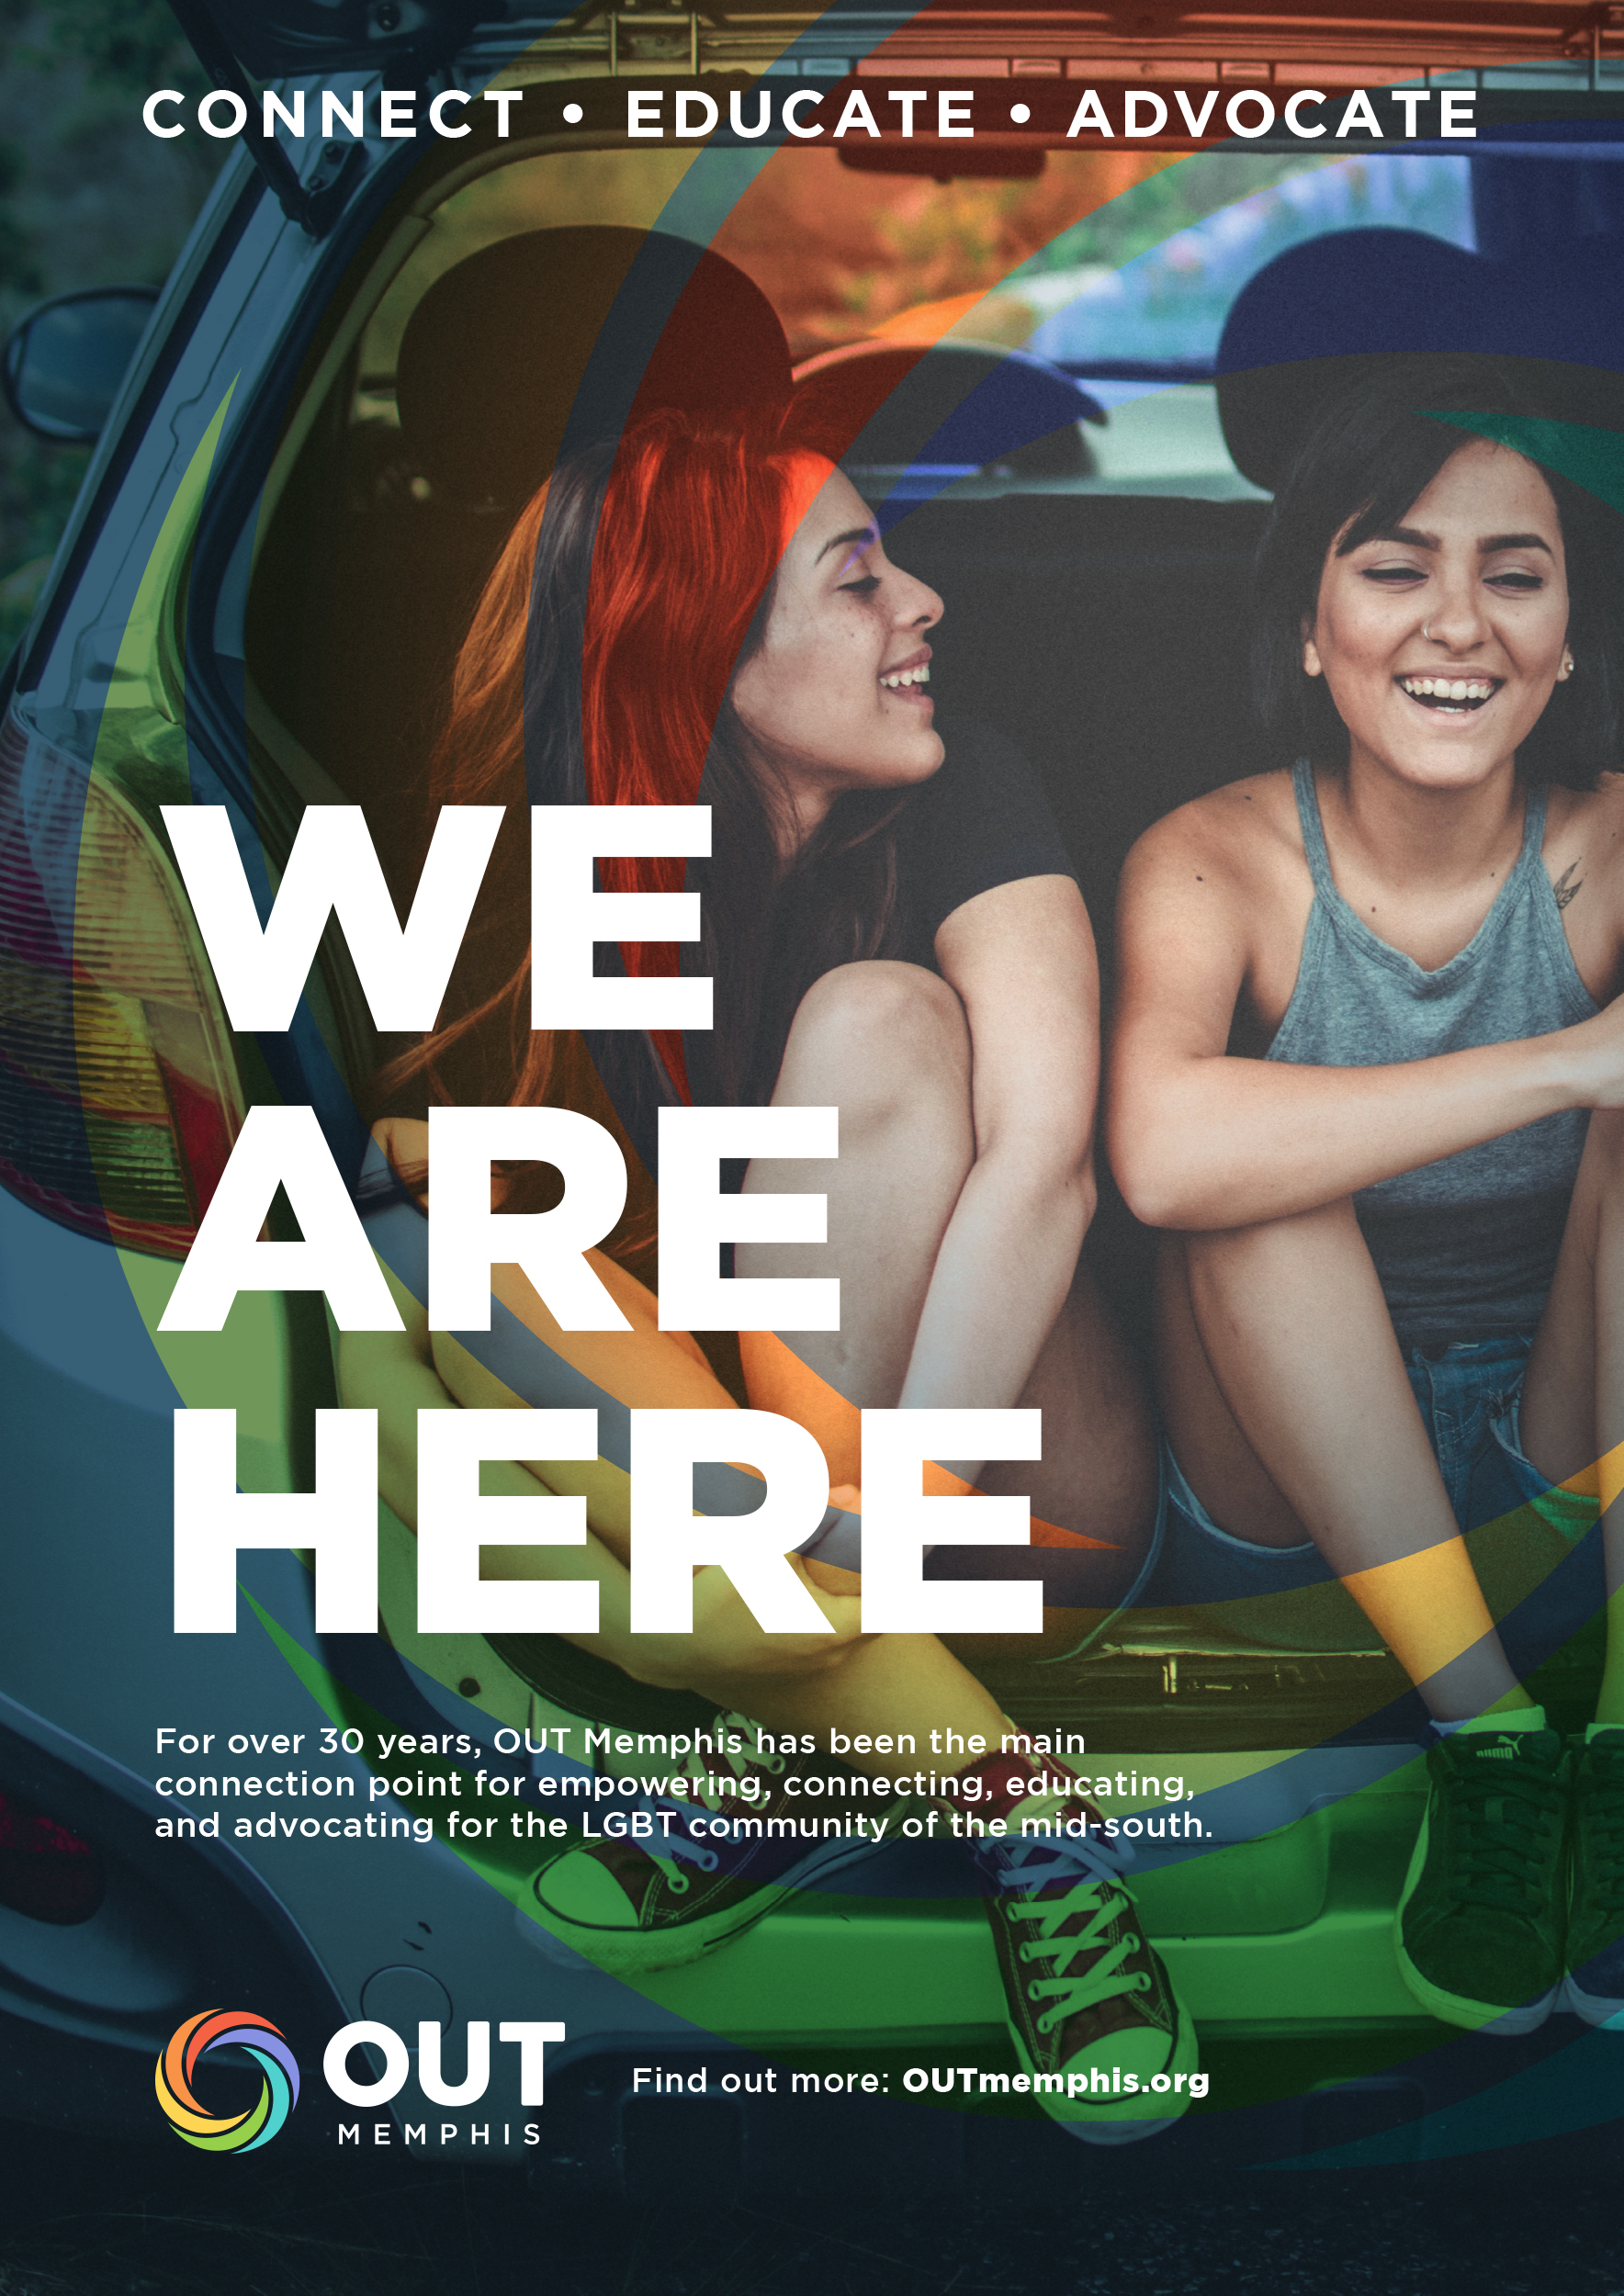 outmemphis ad campaign poster with two girls and text We are here.